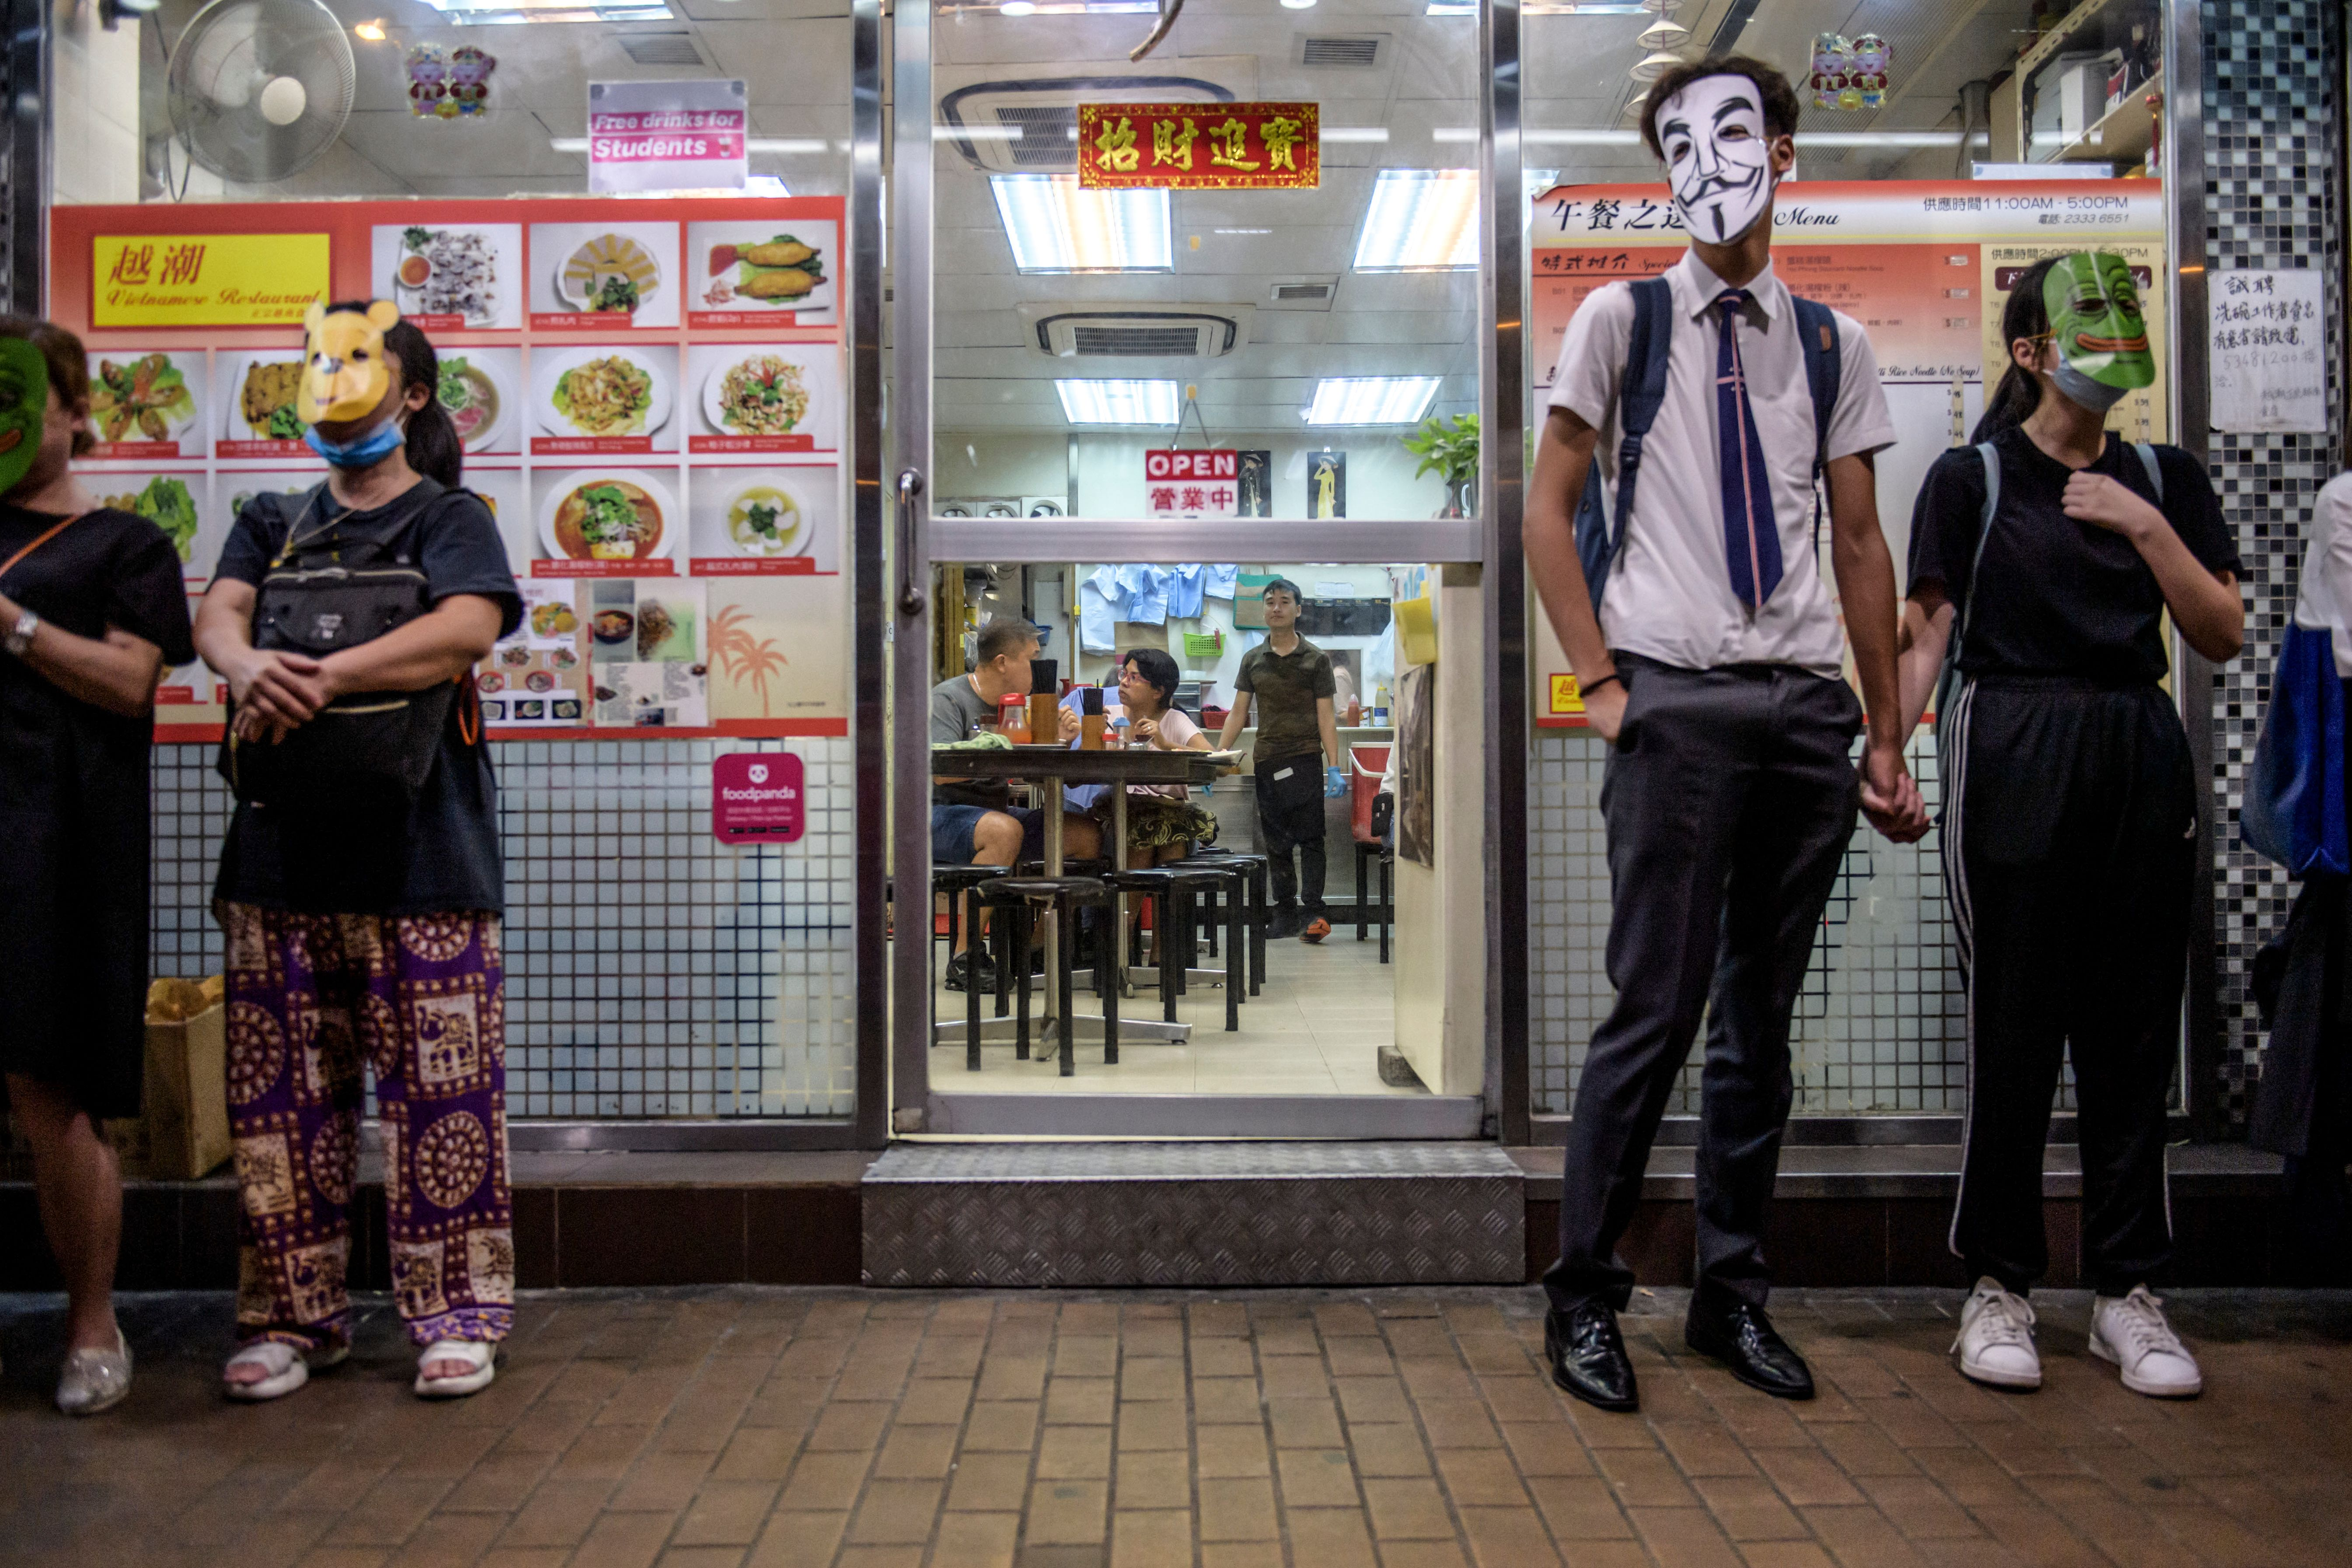 Masked protesters stand outside a restaurant